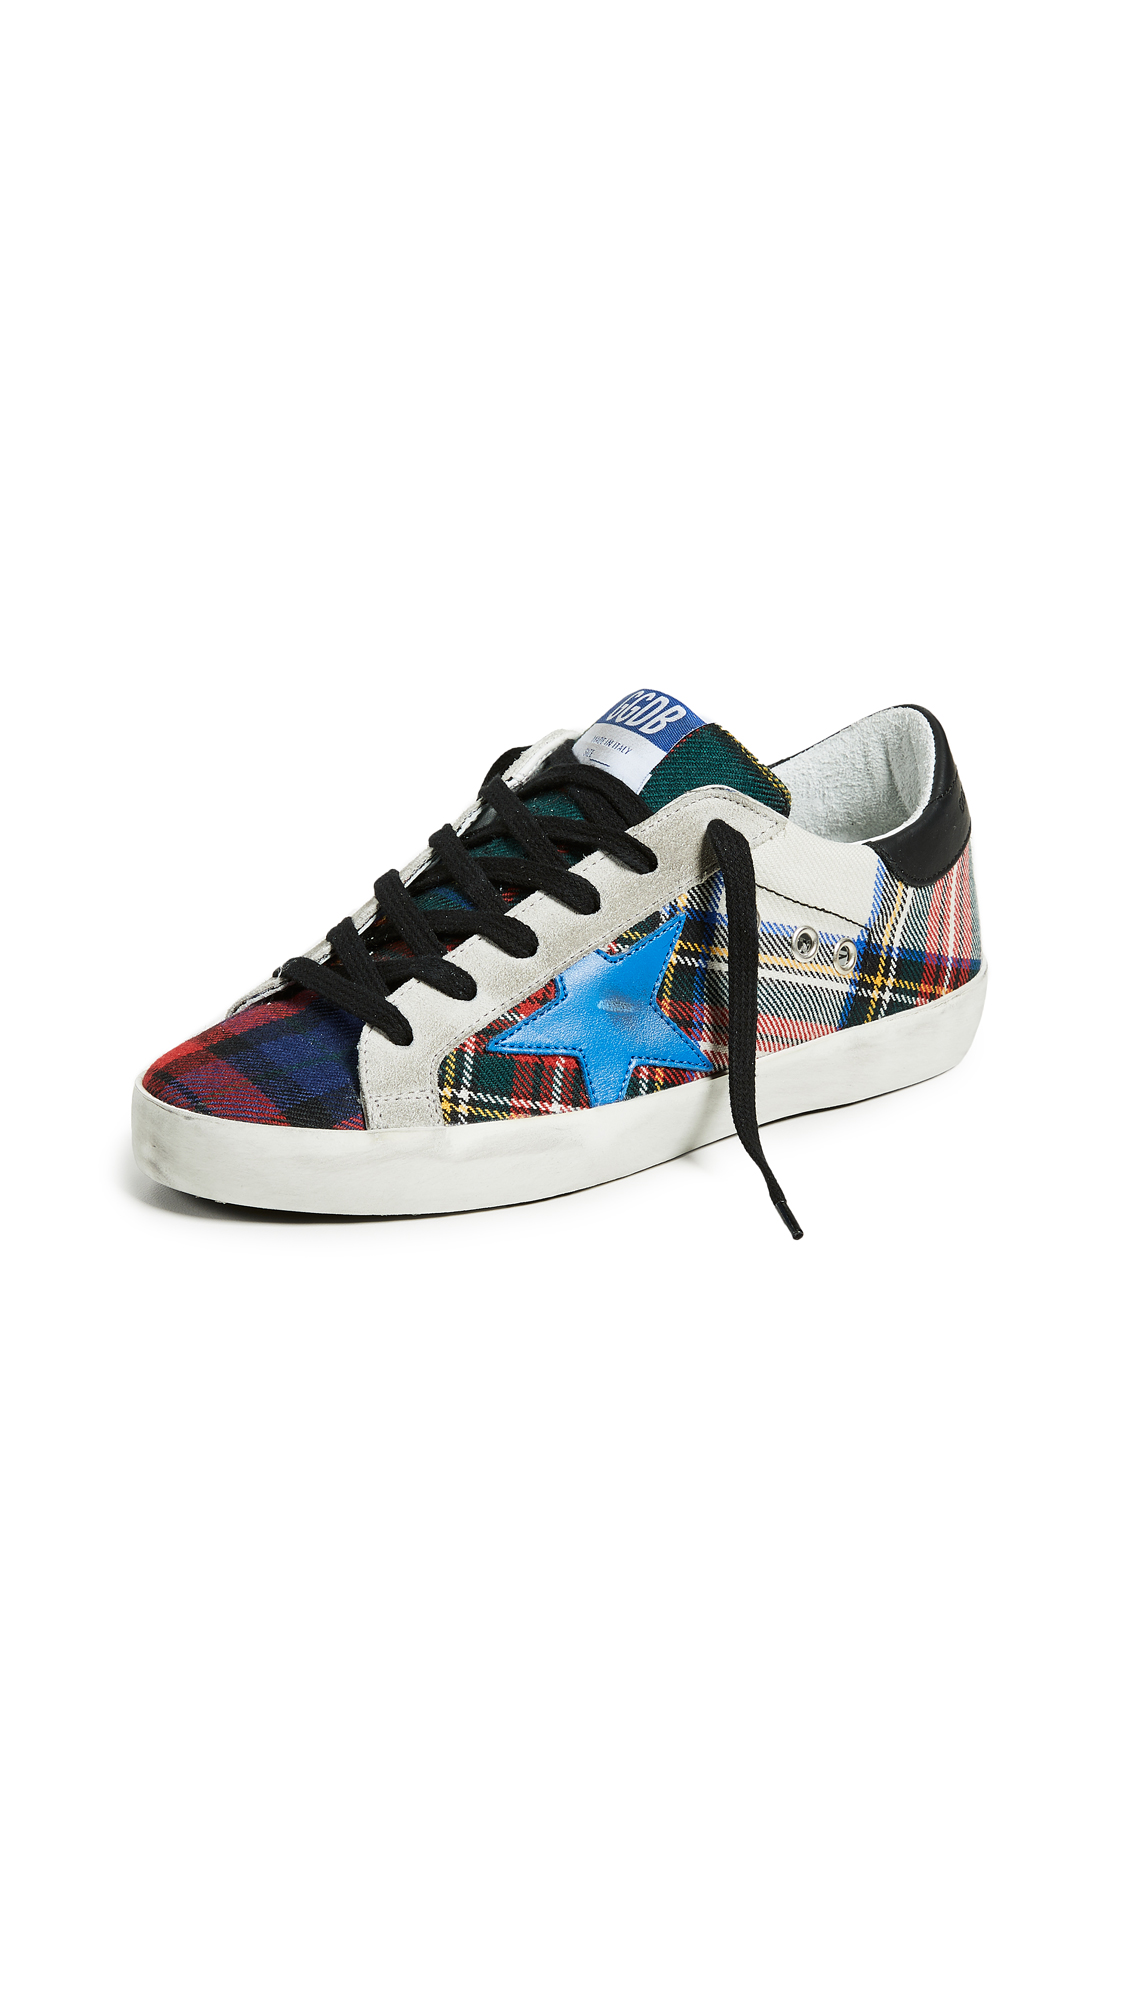 Golden Goose Superstar Sneakers - Red/Green/White